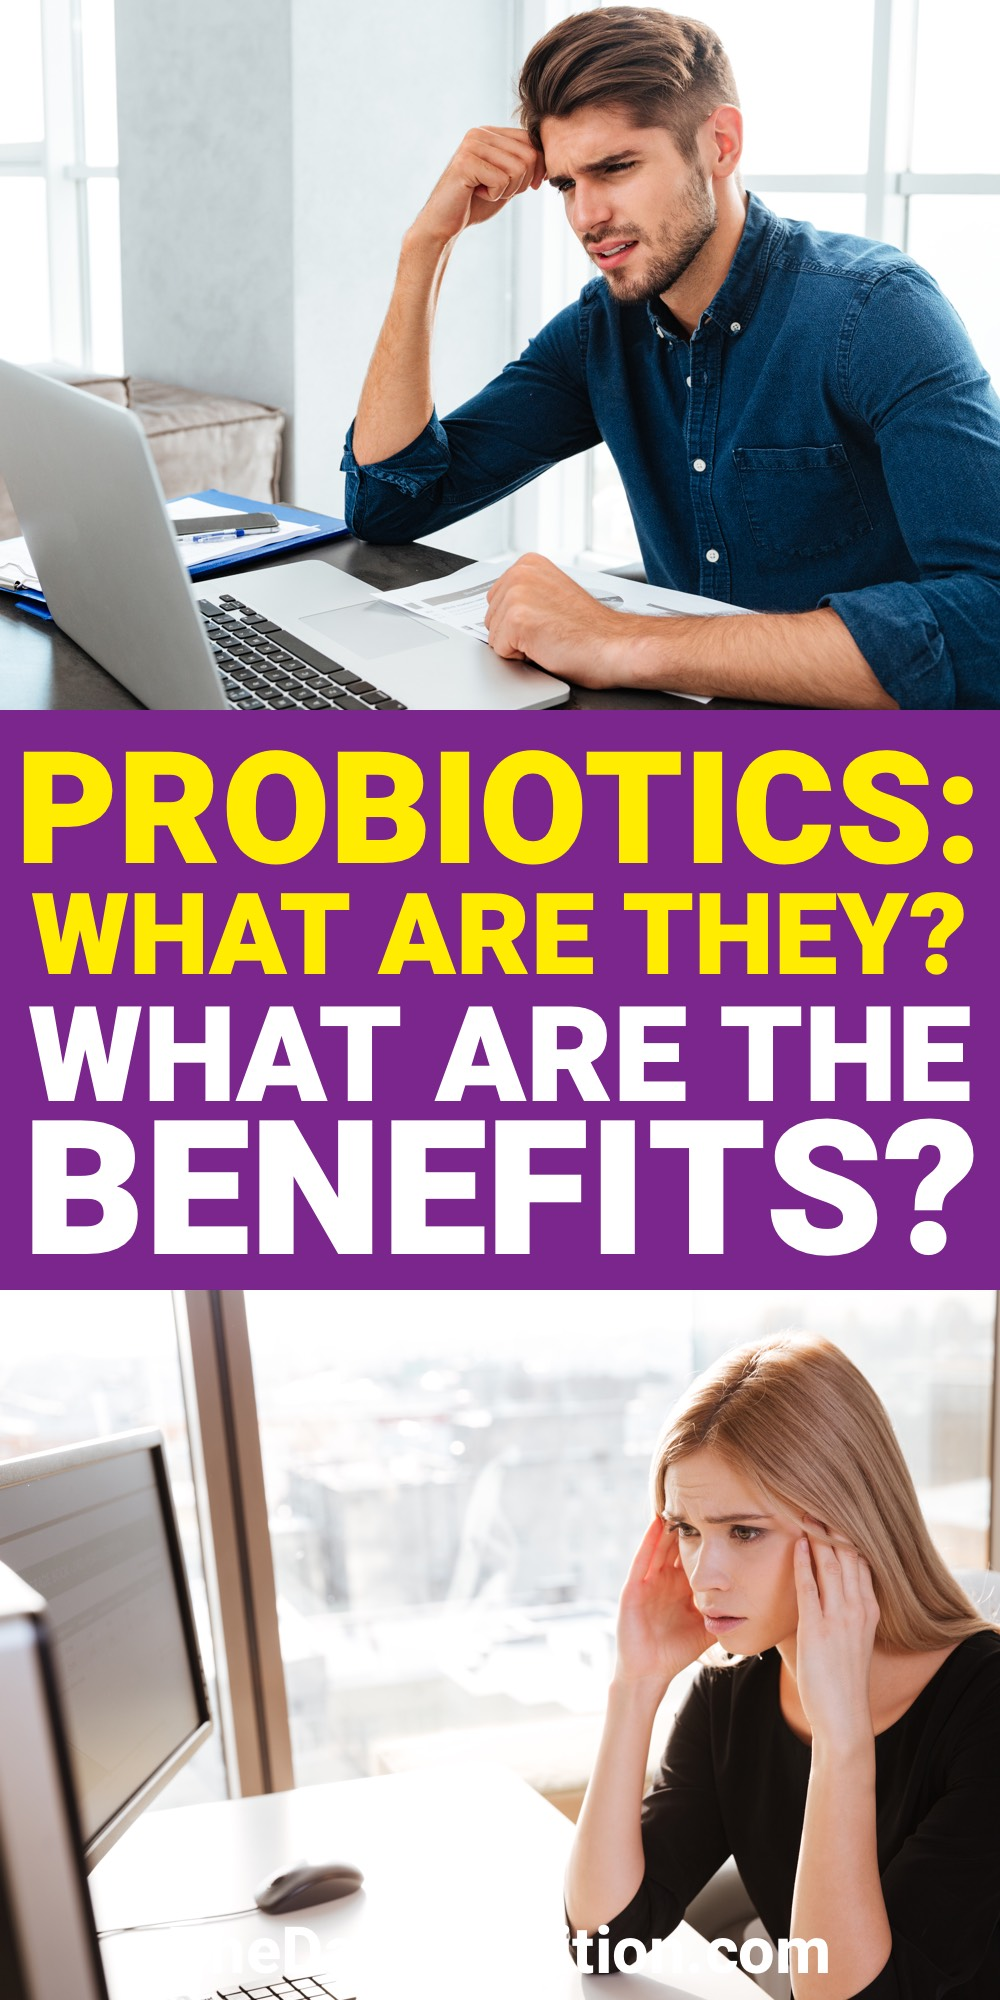 If you've heard of probiotics then you know they are good for your gut health. But what are probiotics? Are they necessary for a healthy gut?